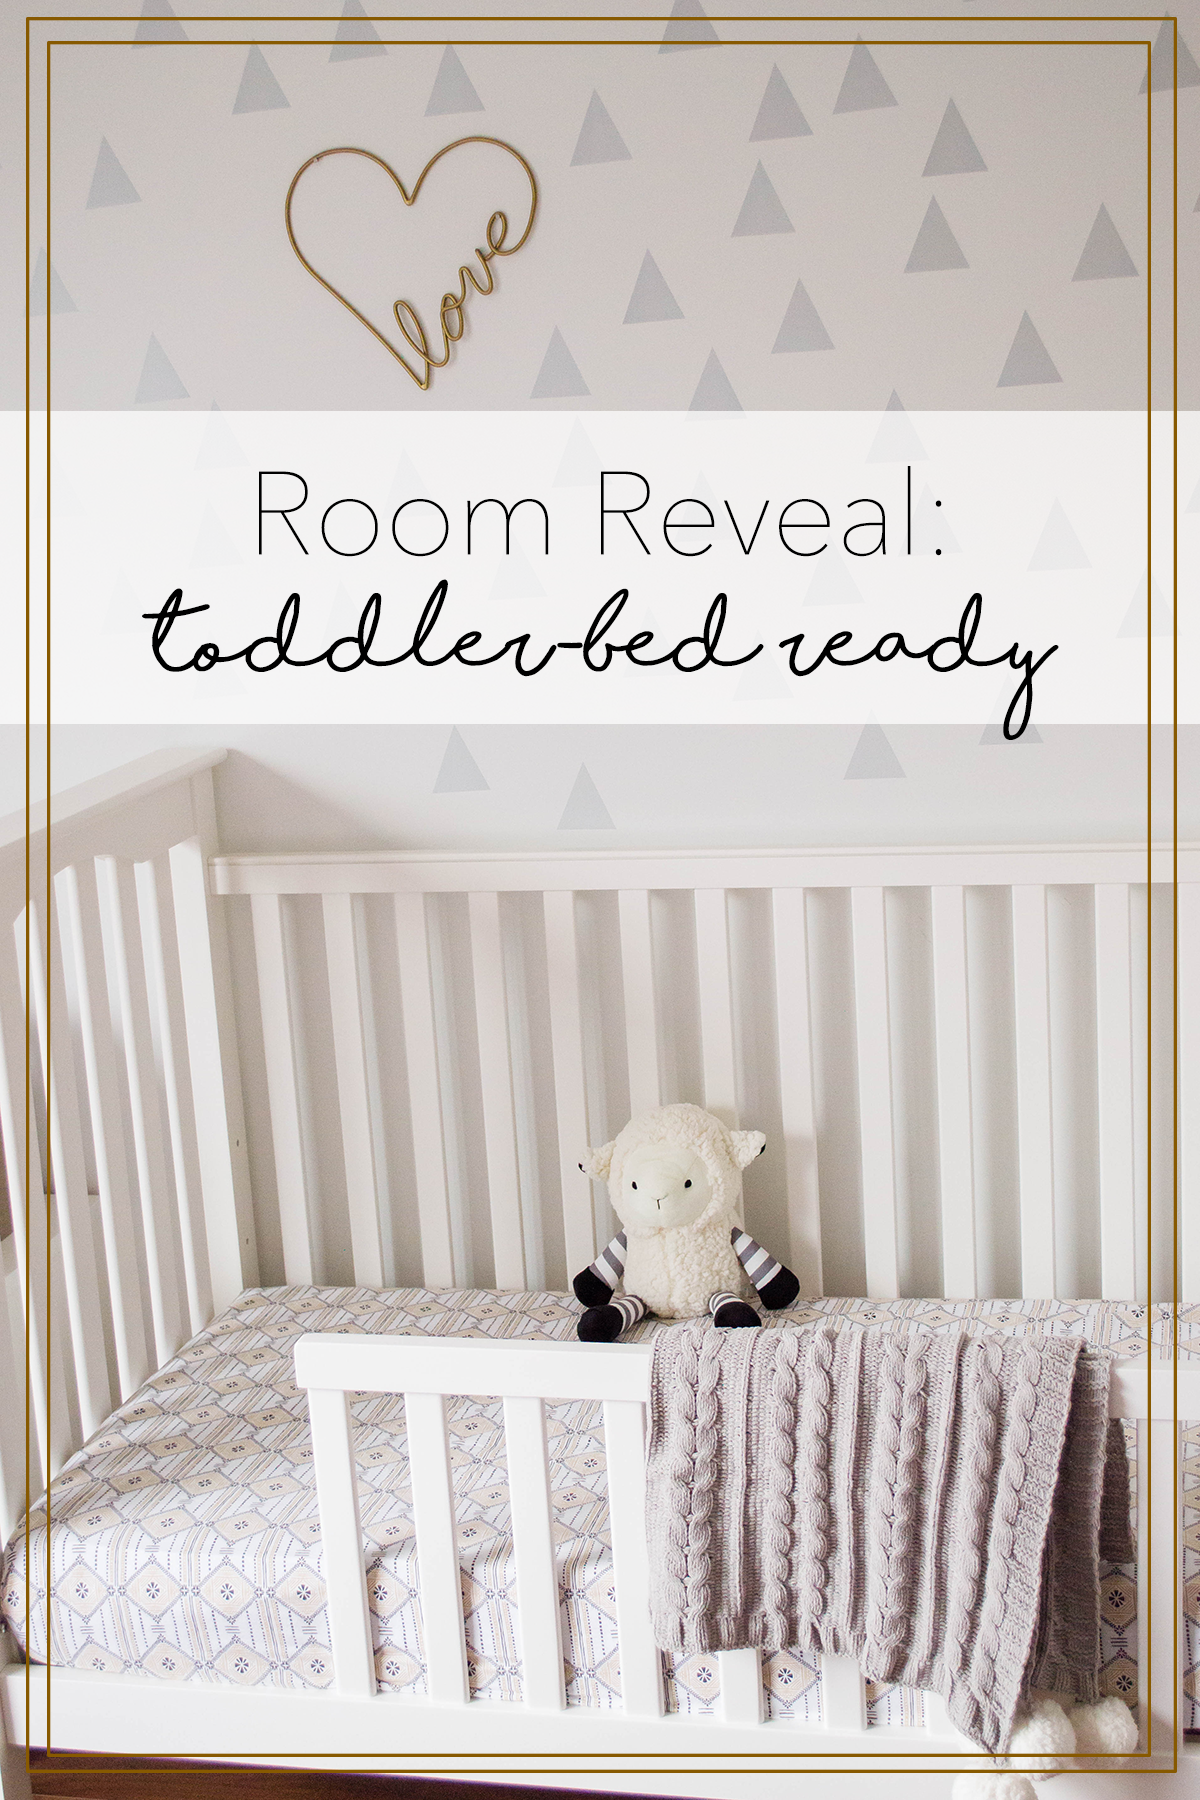 Room Reveal Toddler Bed Ready How To Set Up Your New Toddler Bed